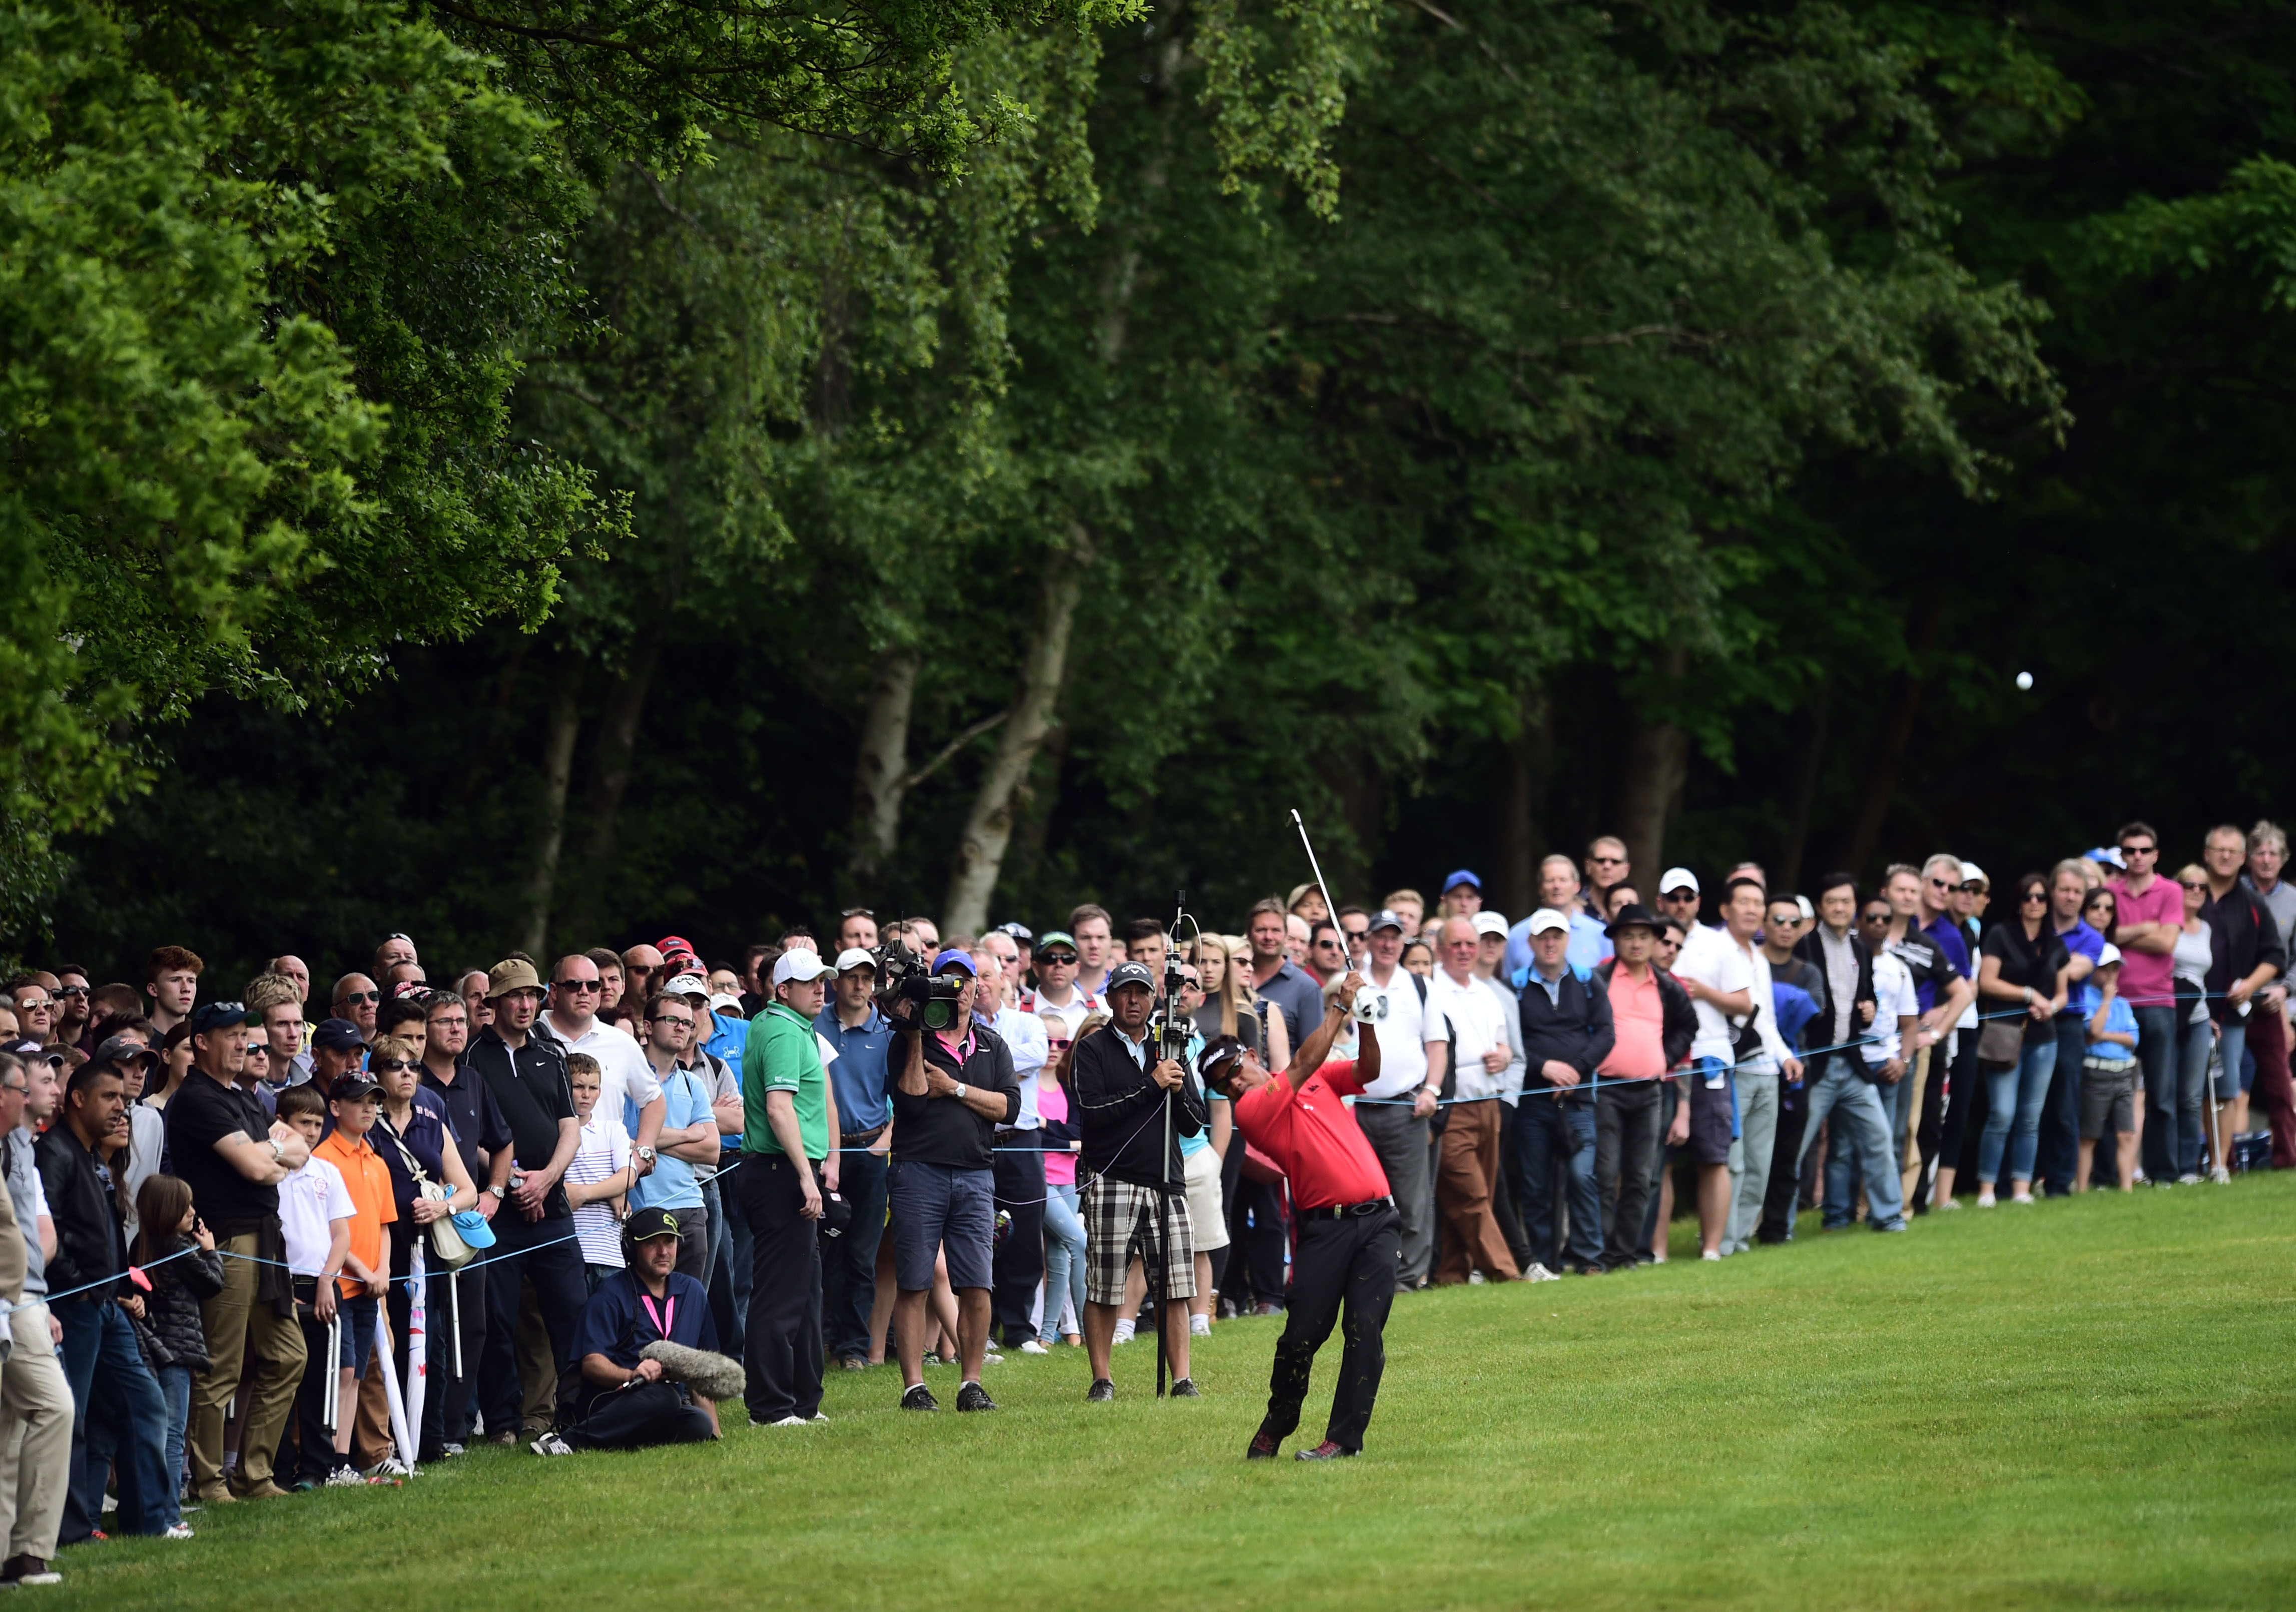 Thailand's Thongchai Jaidee makes a shot,  during day four of the 2015 BMW PGA Championship,  at the Wentworth golf club, in Virginia Water, England, Sunday May 24, 2015. (Adam Davy/PA via AP) UNITED KINGDOM OUT NO SALES NO ARCHIVE